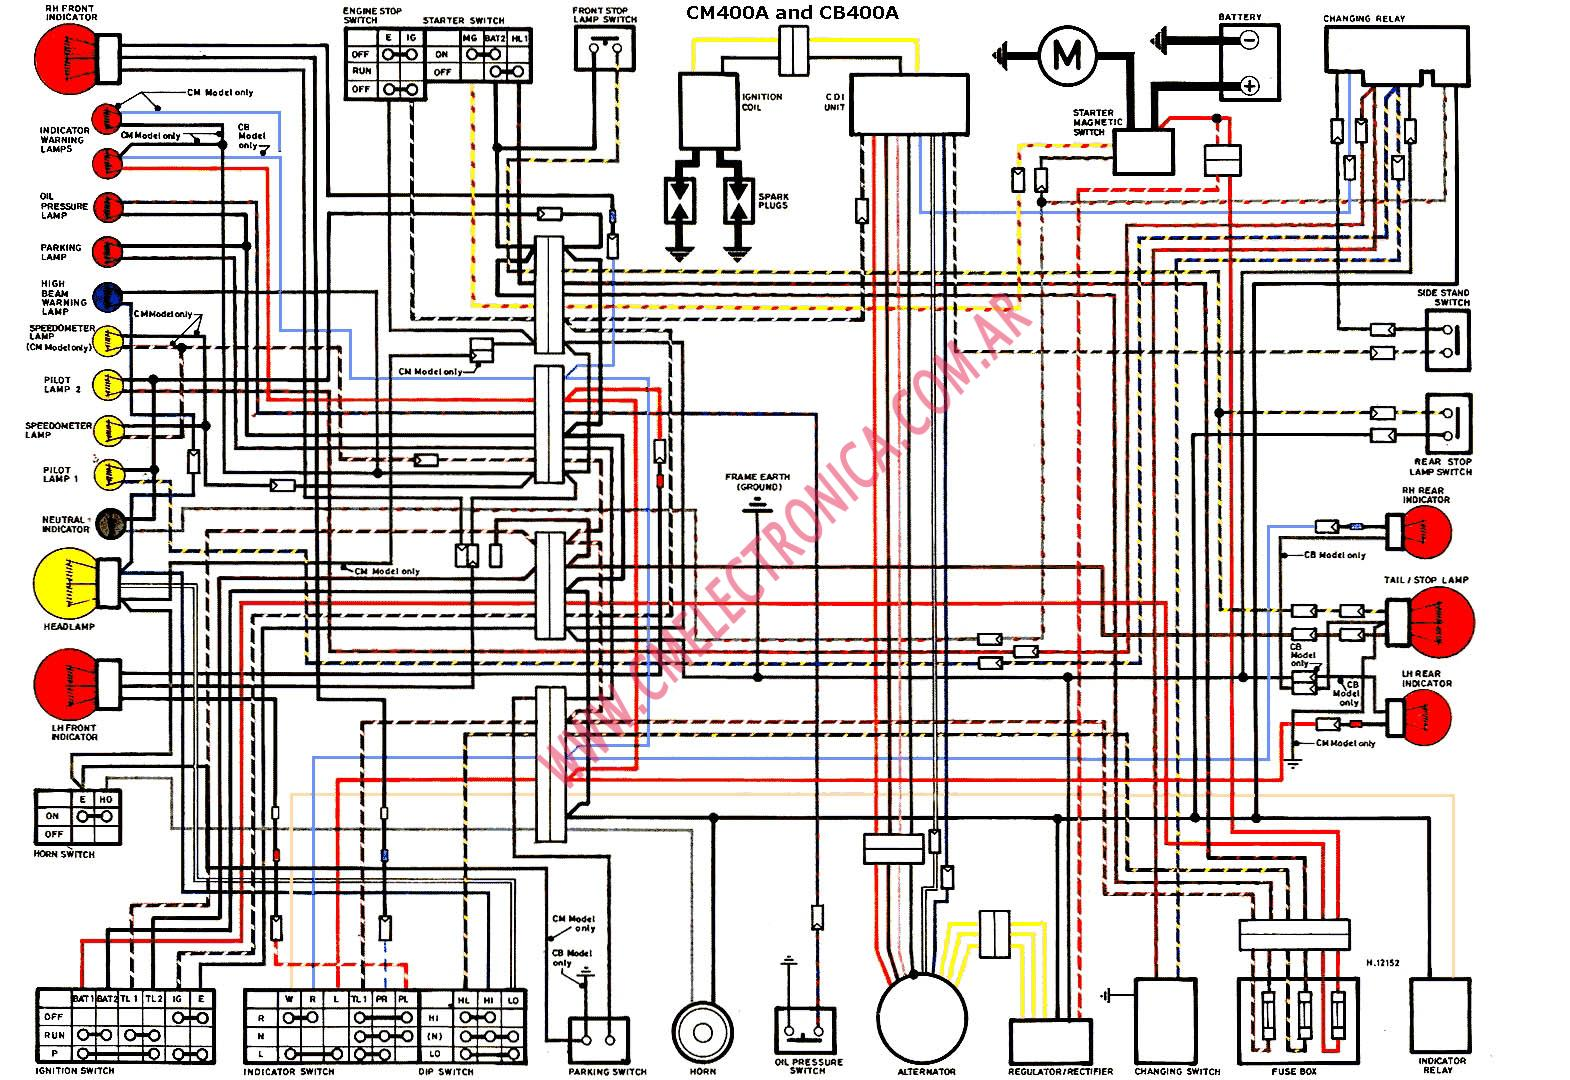 briggs and stratton 12 5 hp wiring diagram  briggs  free